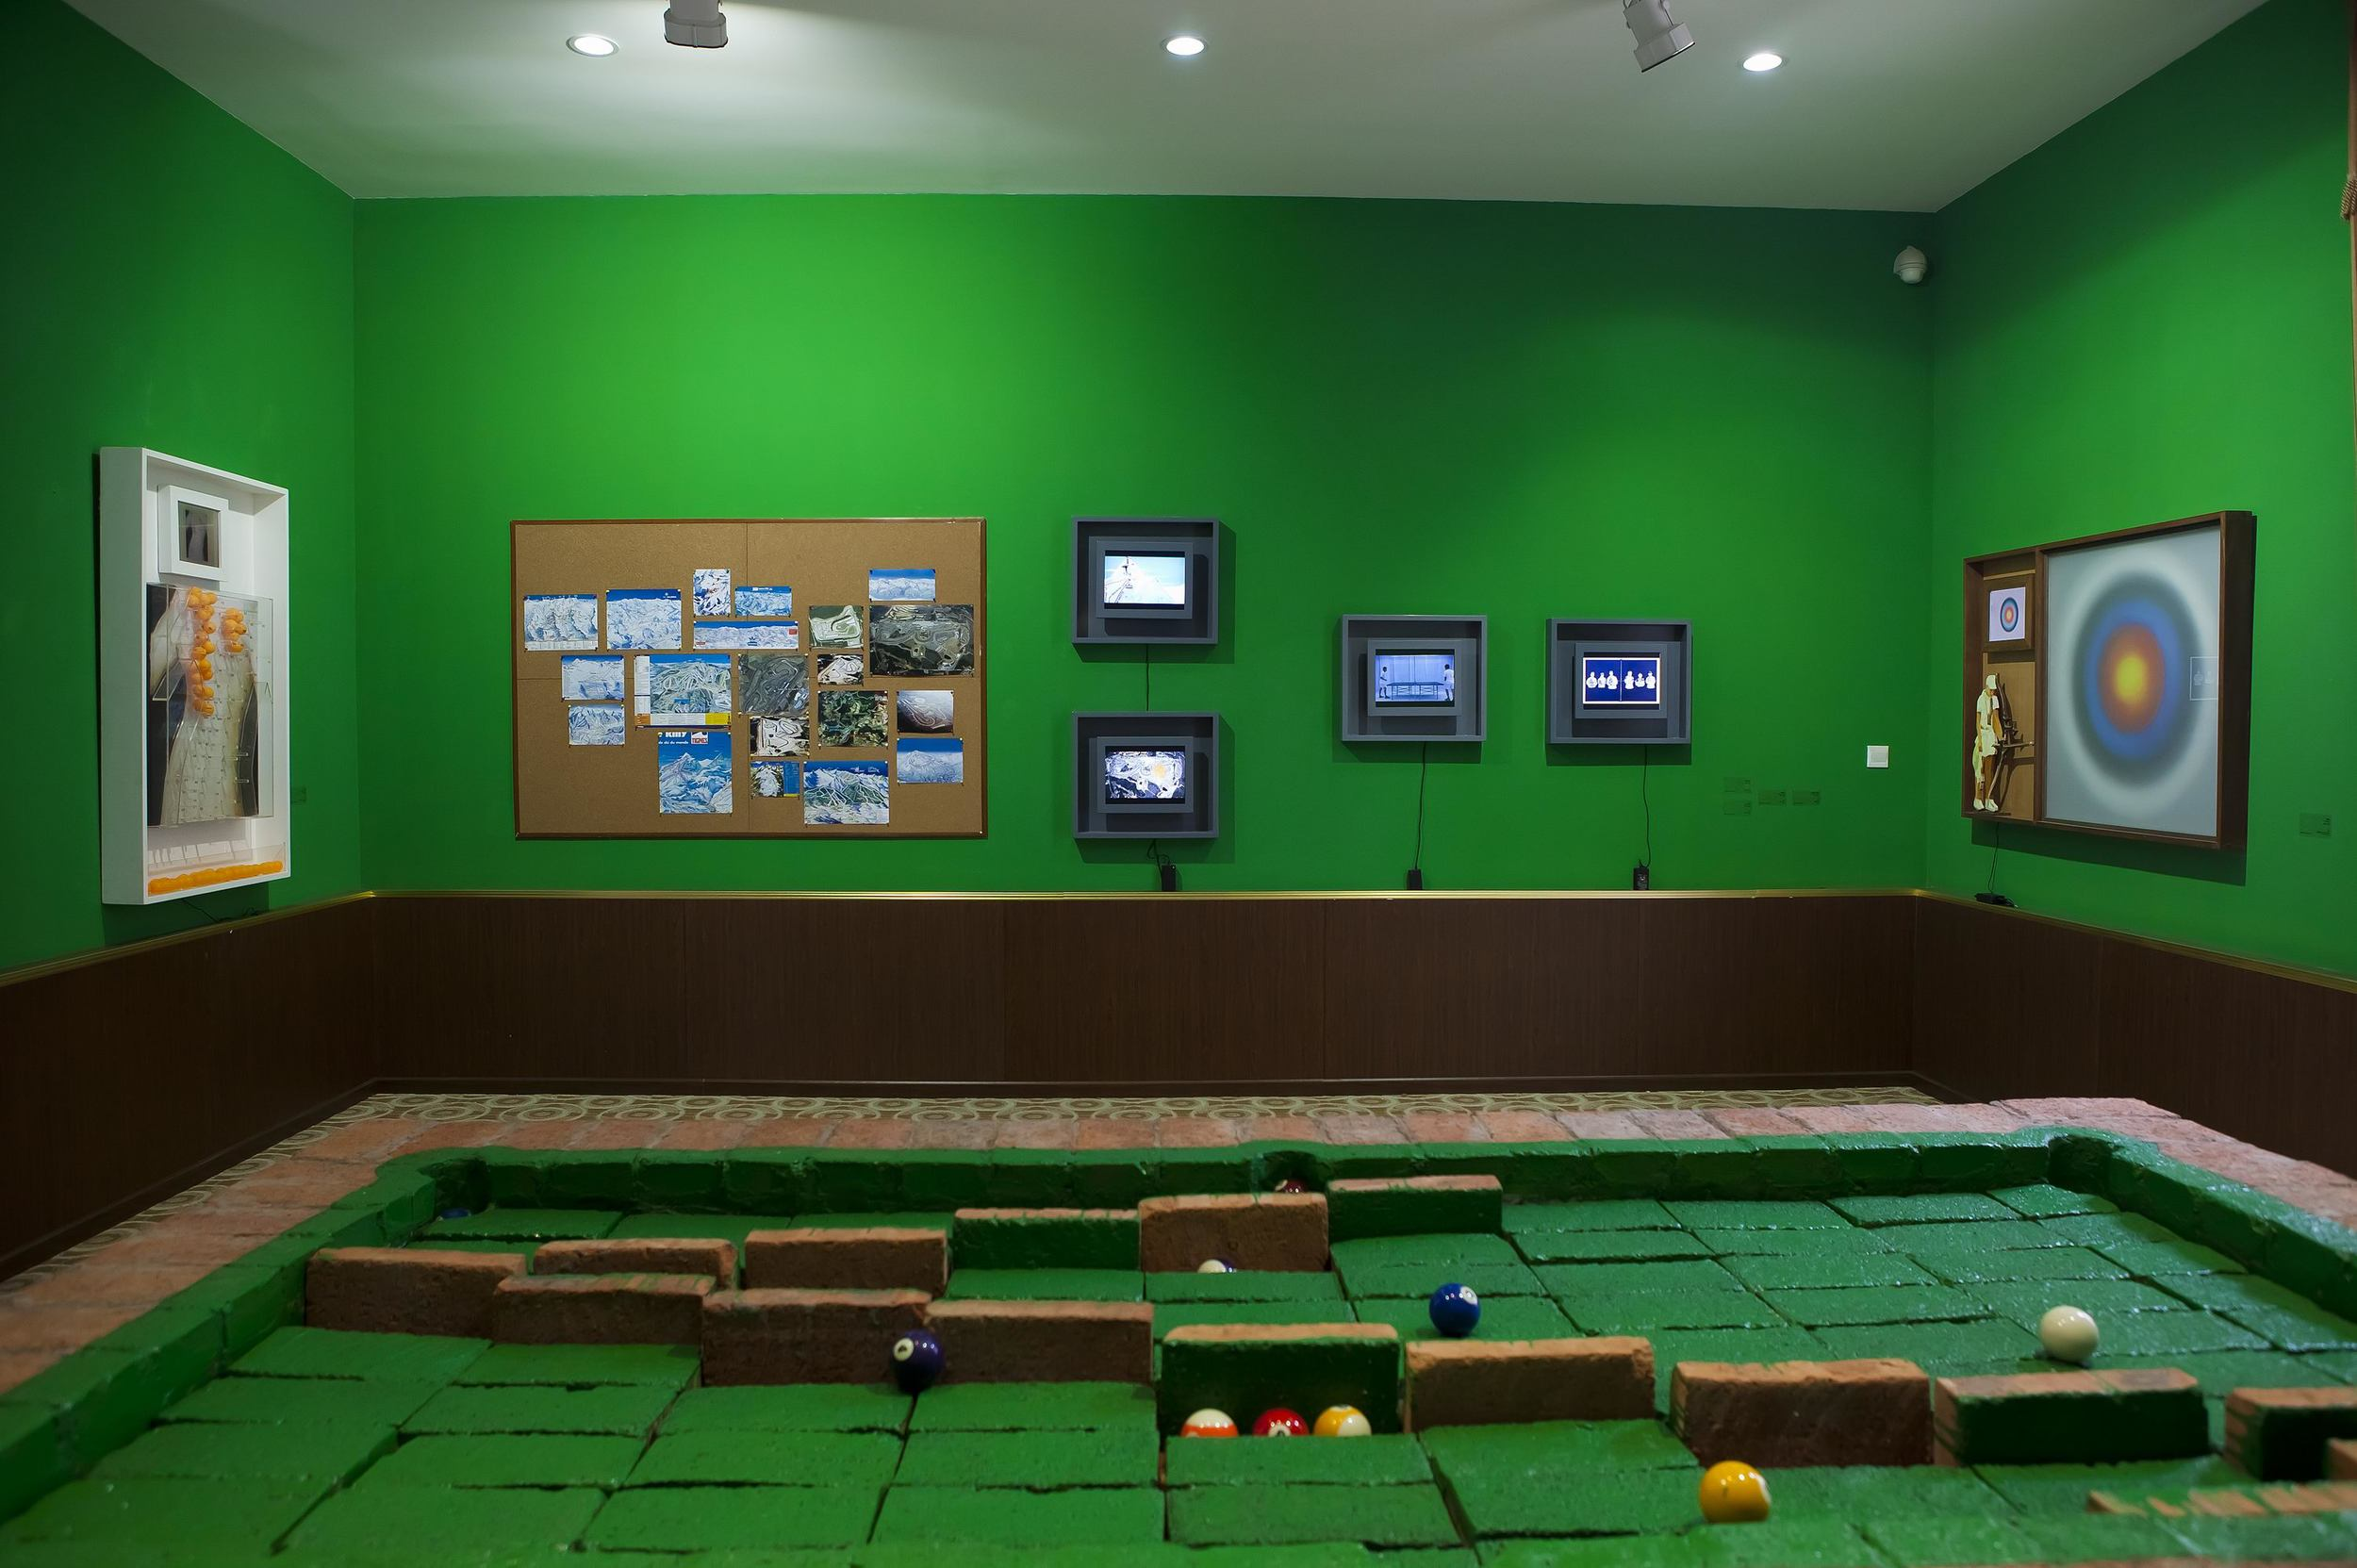 Li Qing 李青, Room of Games 游戏房, 2011, Video installation 录像装置